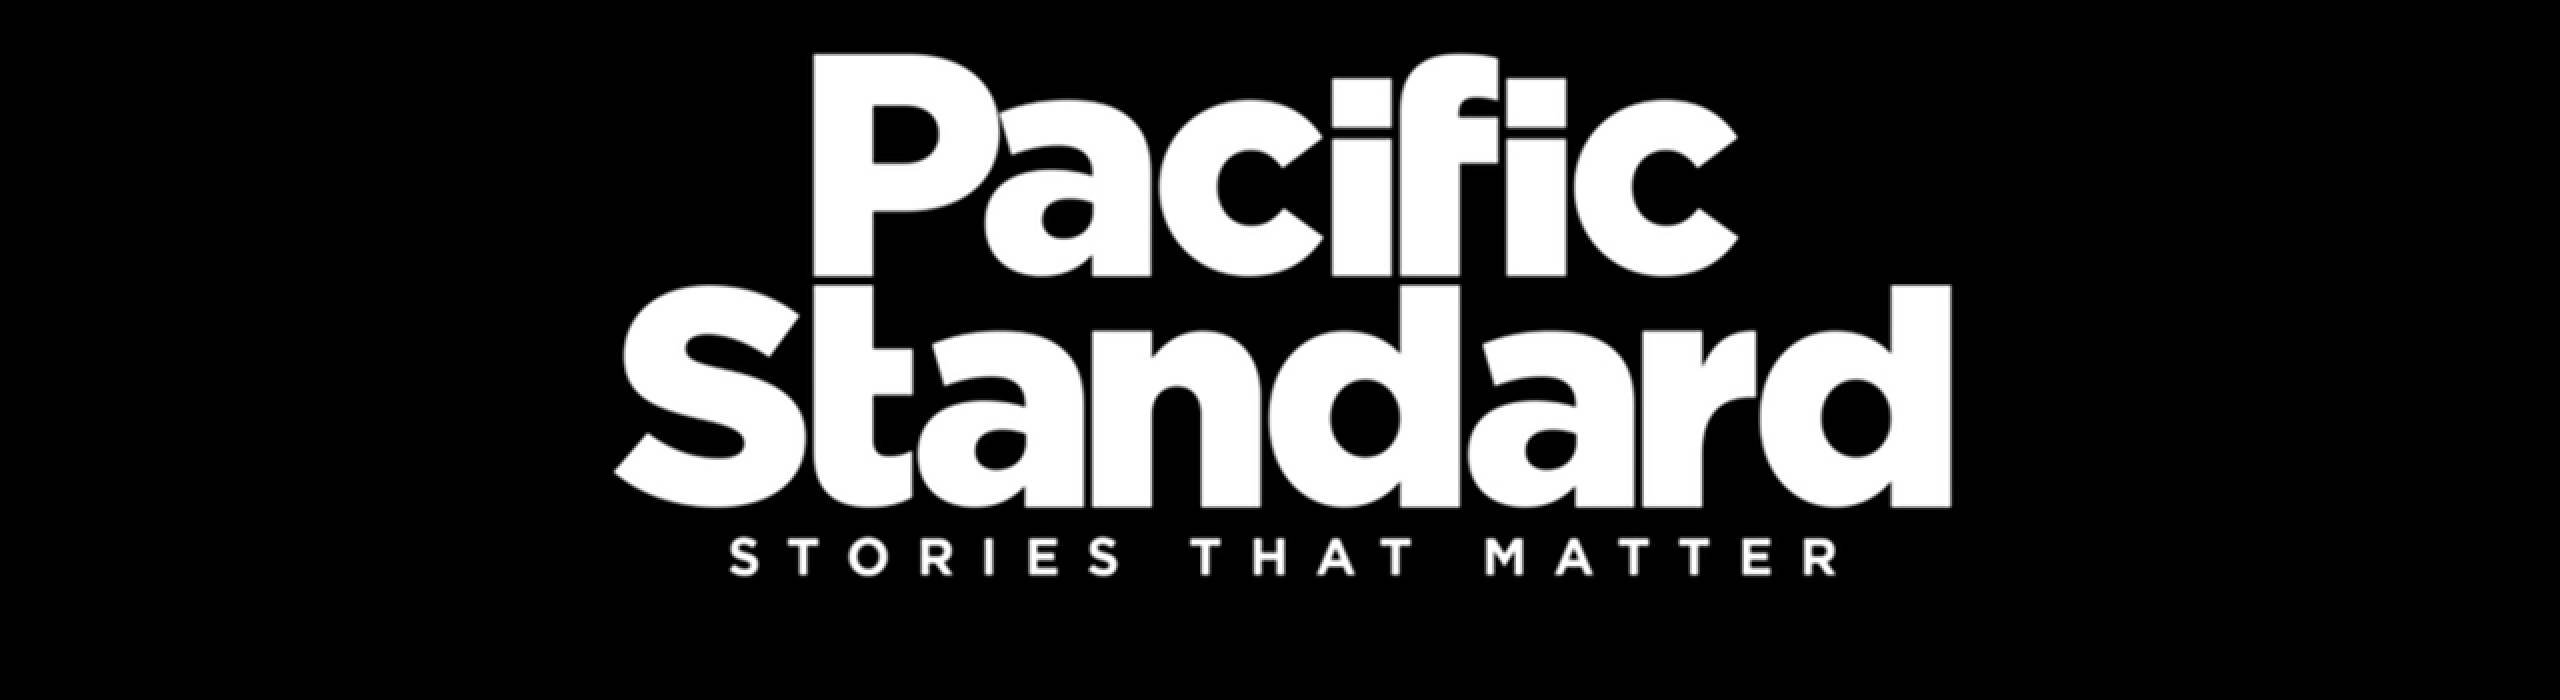 The Pacific Standard masthead